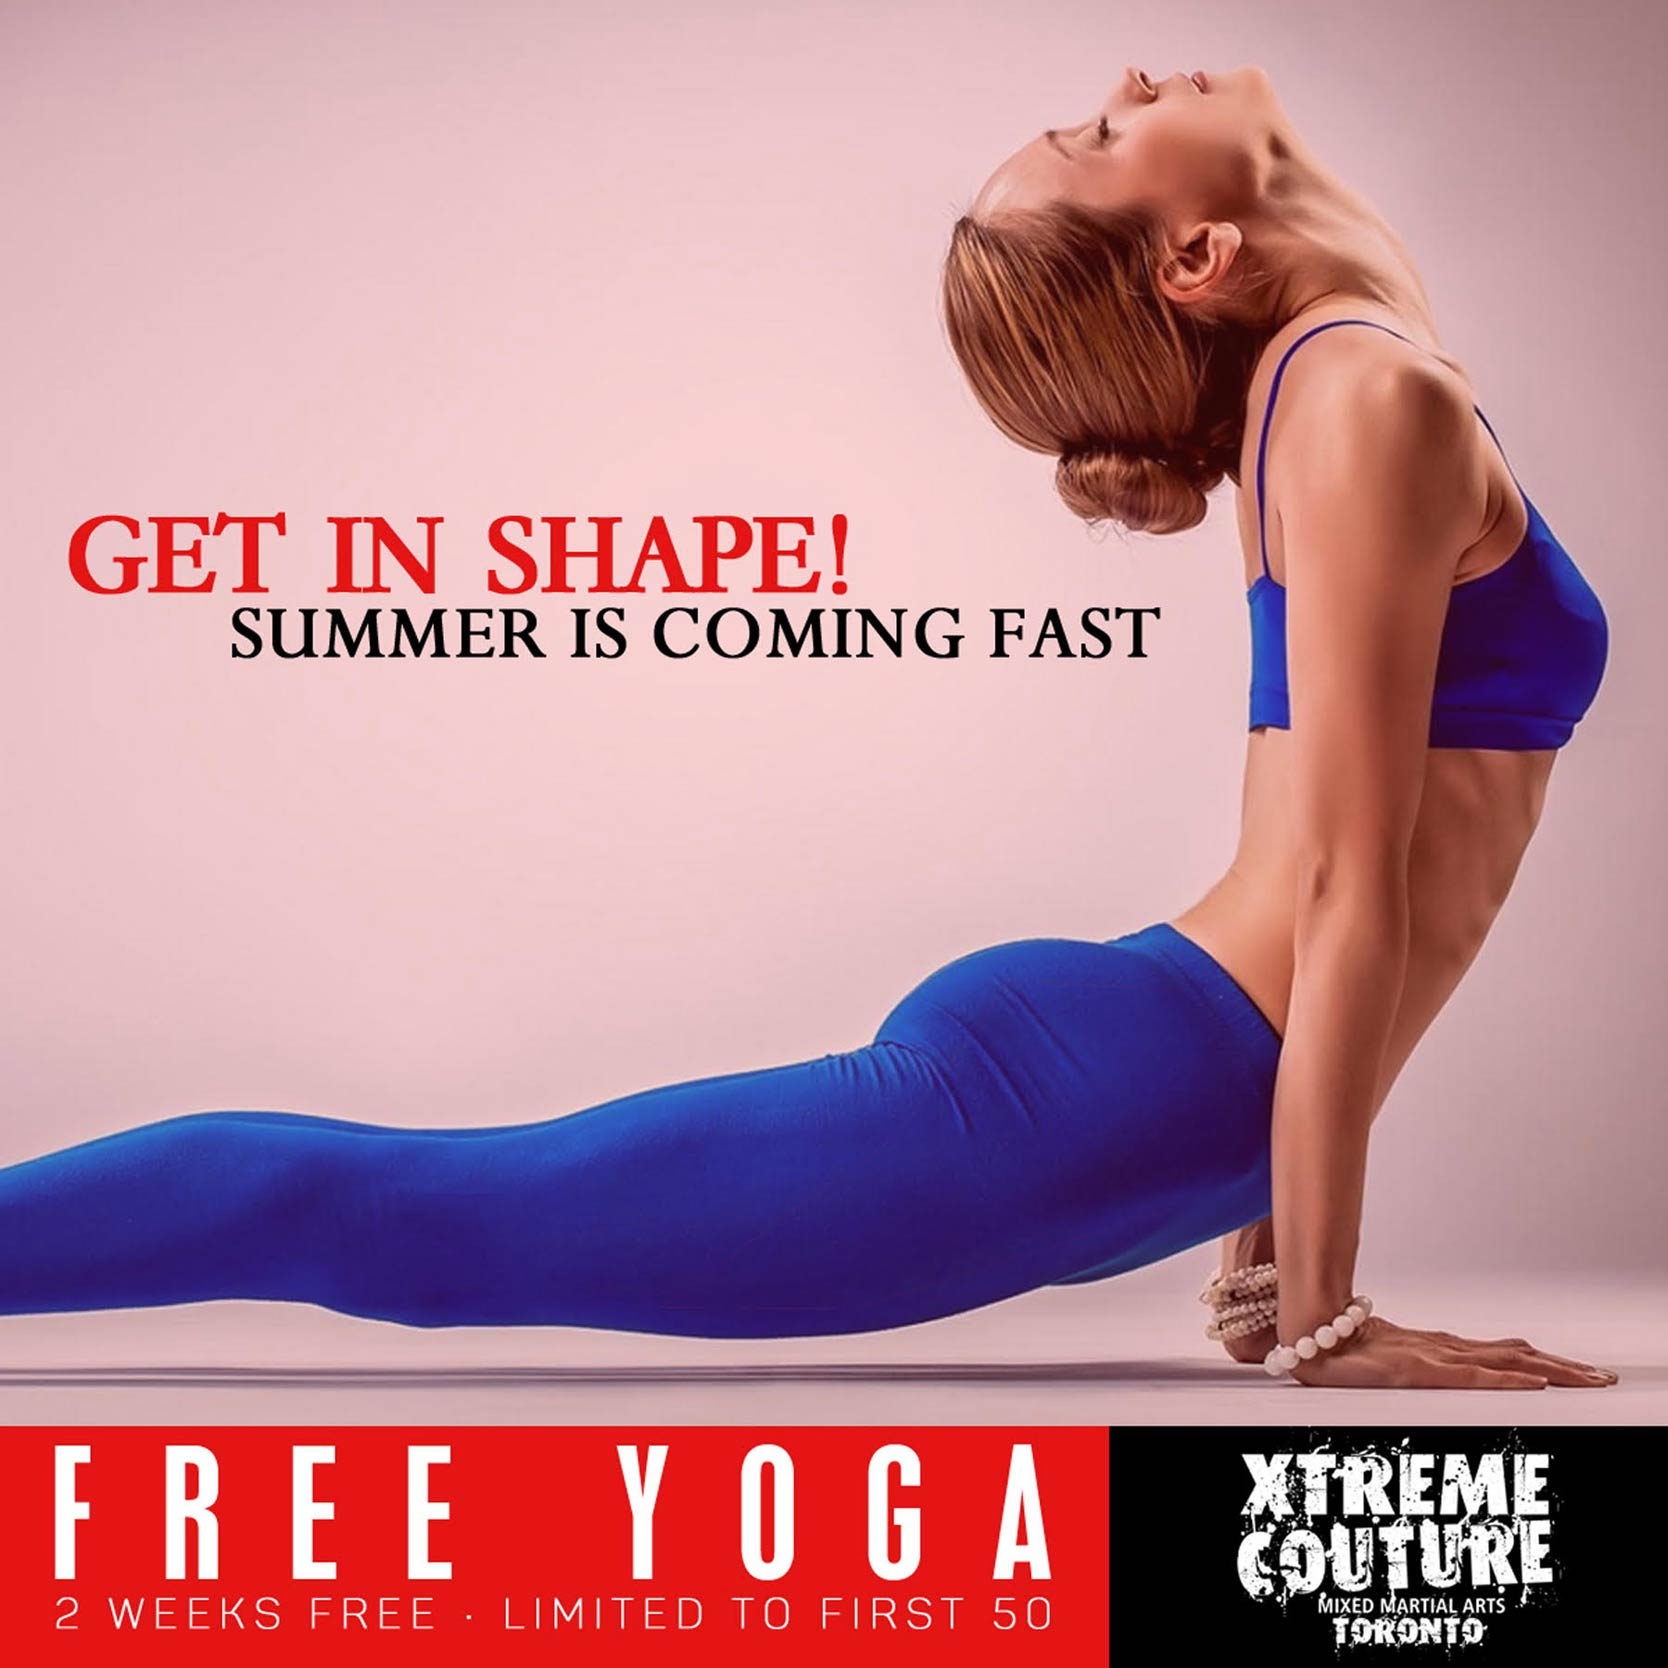 Free Yoga for 2 Weeks